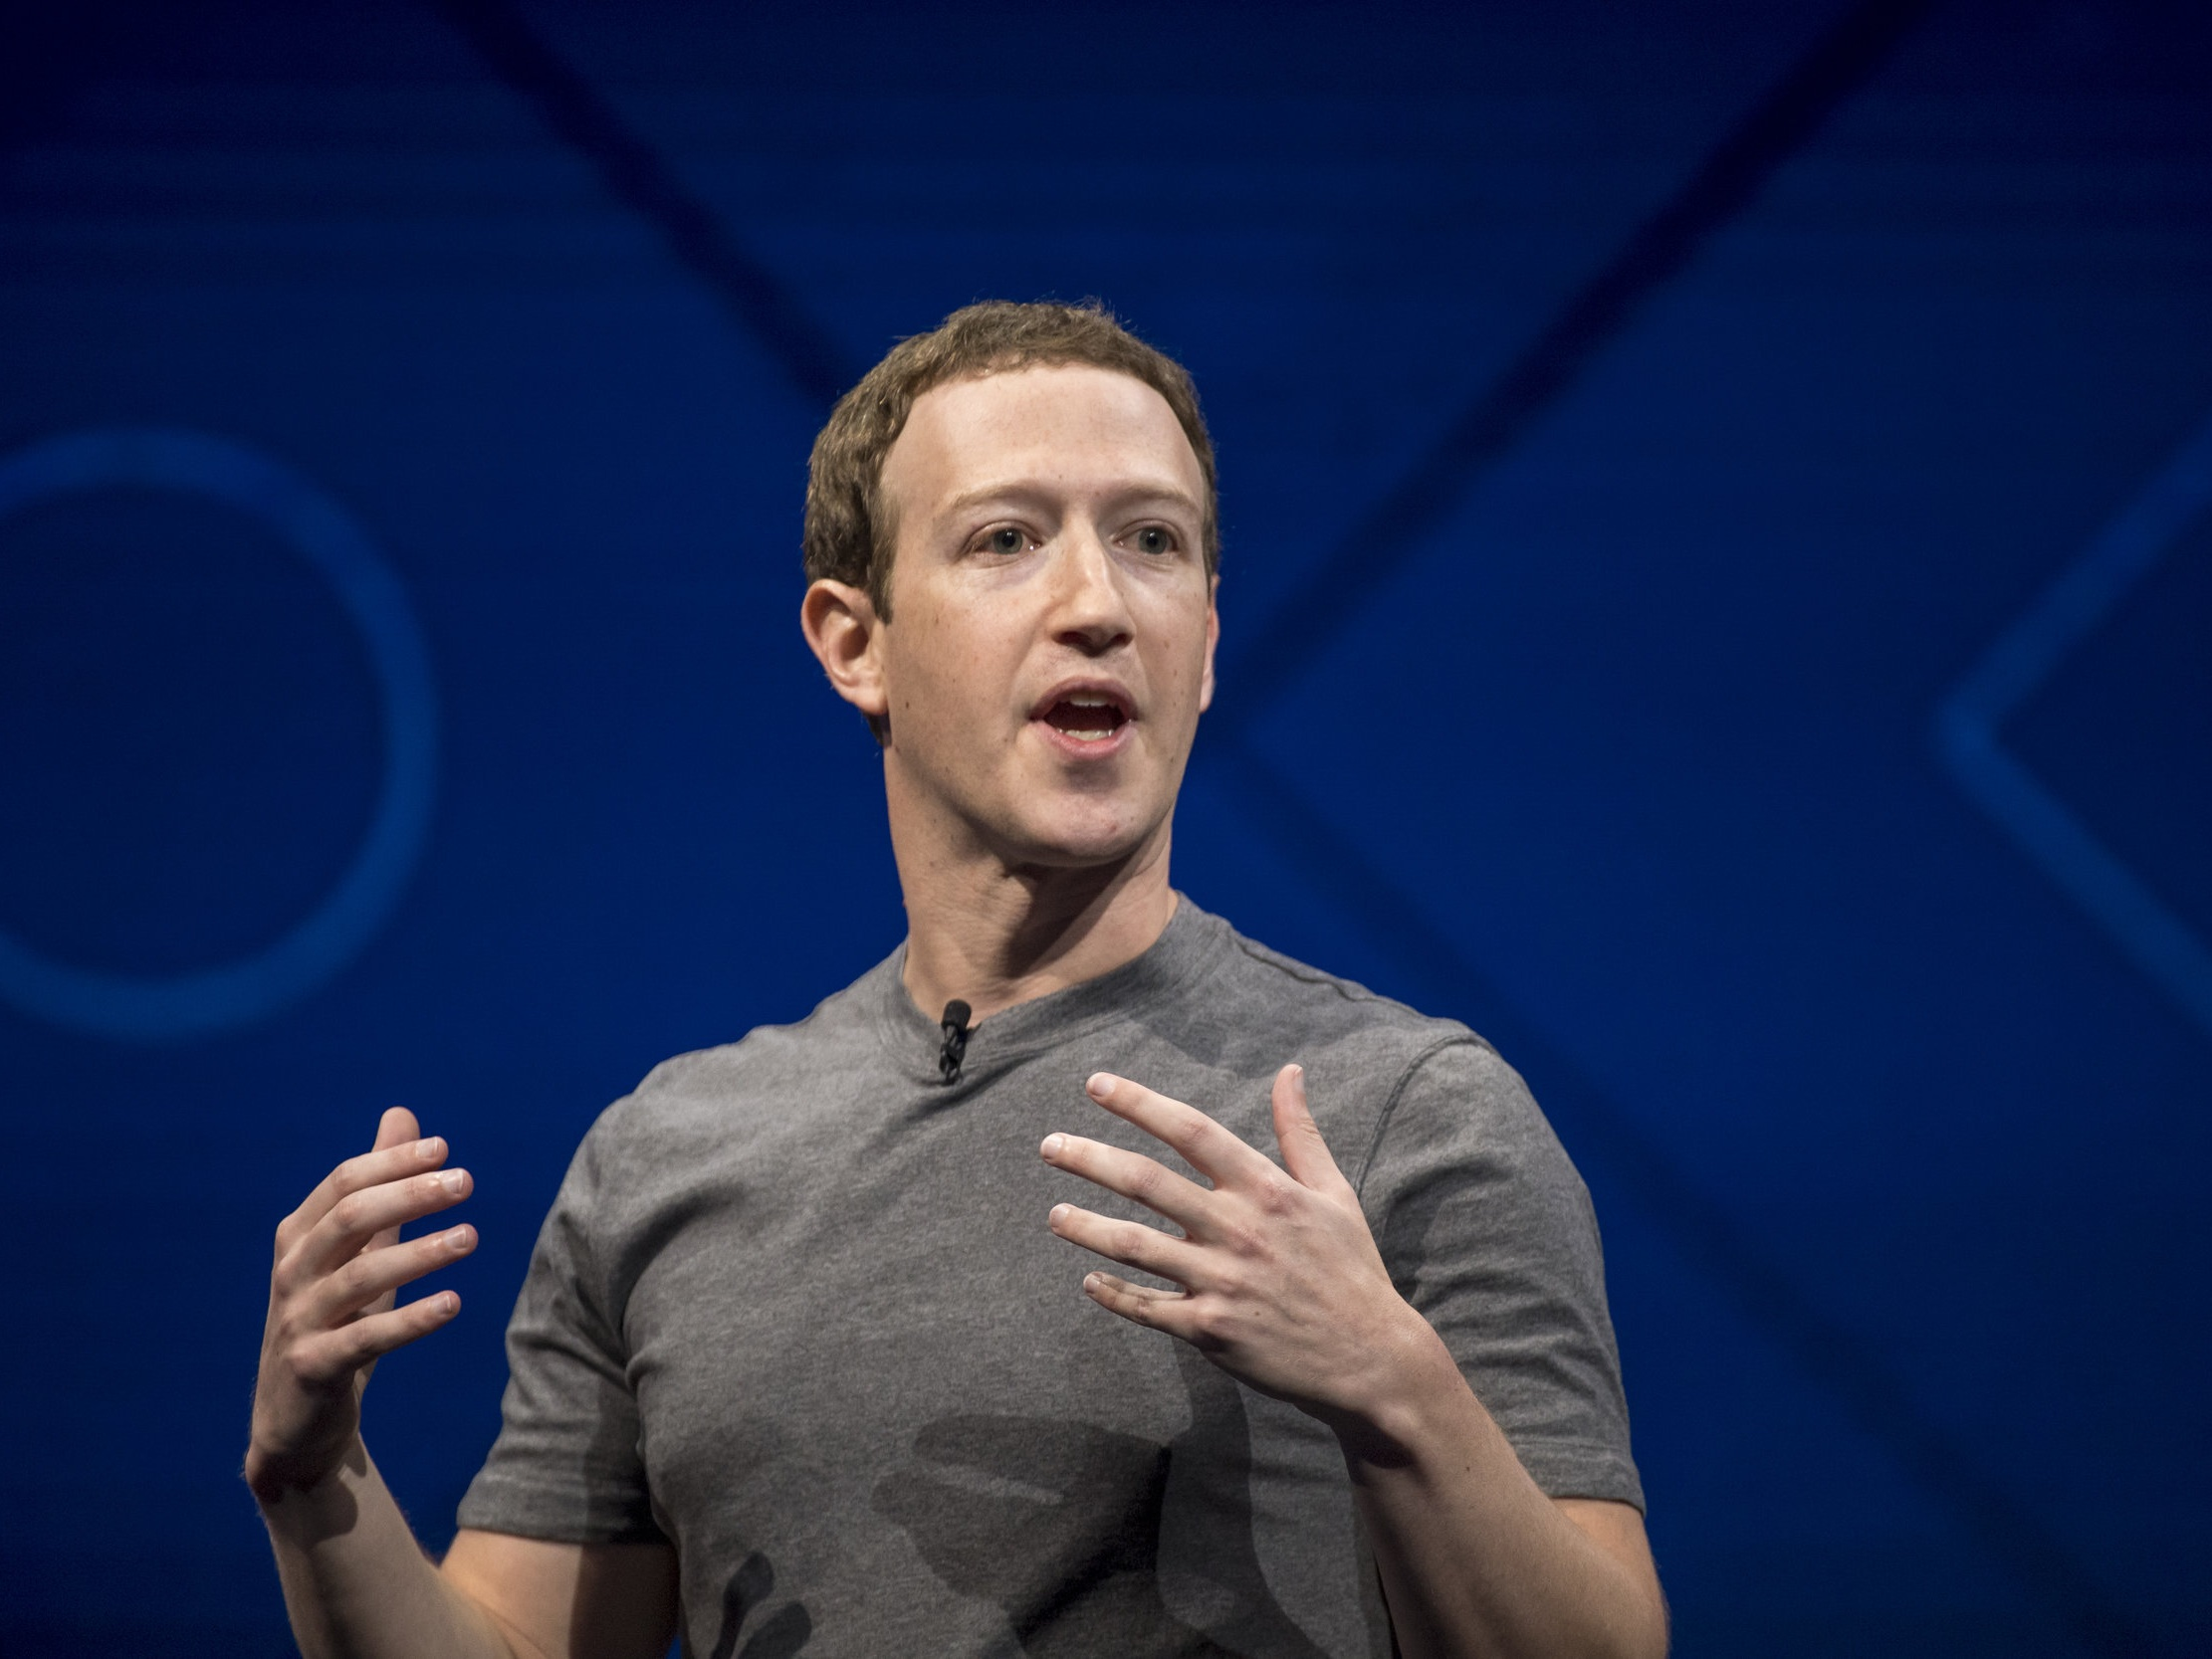 Replicas of Mark Zuckerberg's T-Shirt - FORTUNE | August 4, 2017Zuckerberg's shirts are not just any plain gray t-shirts. But a 26-year-old Austrian fashion entrepreneur is looking to change that.